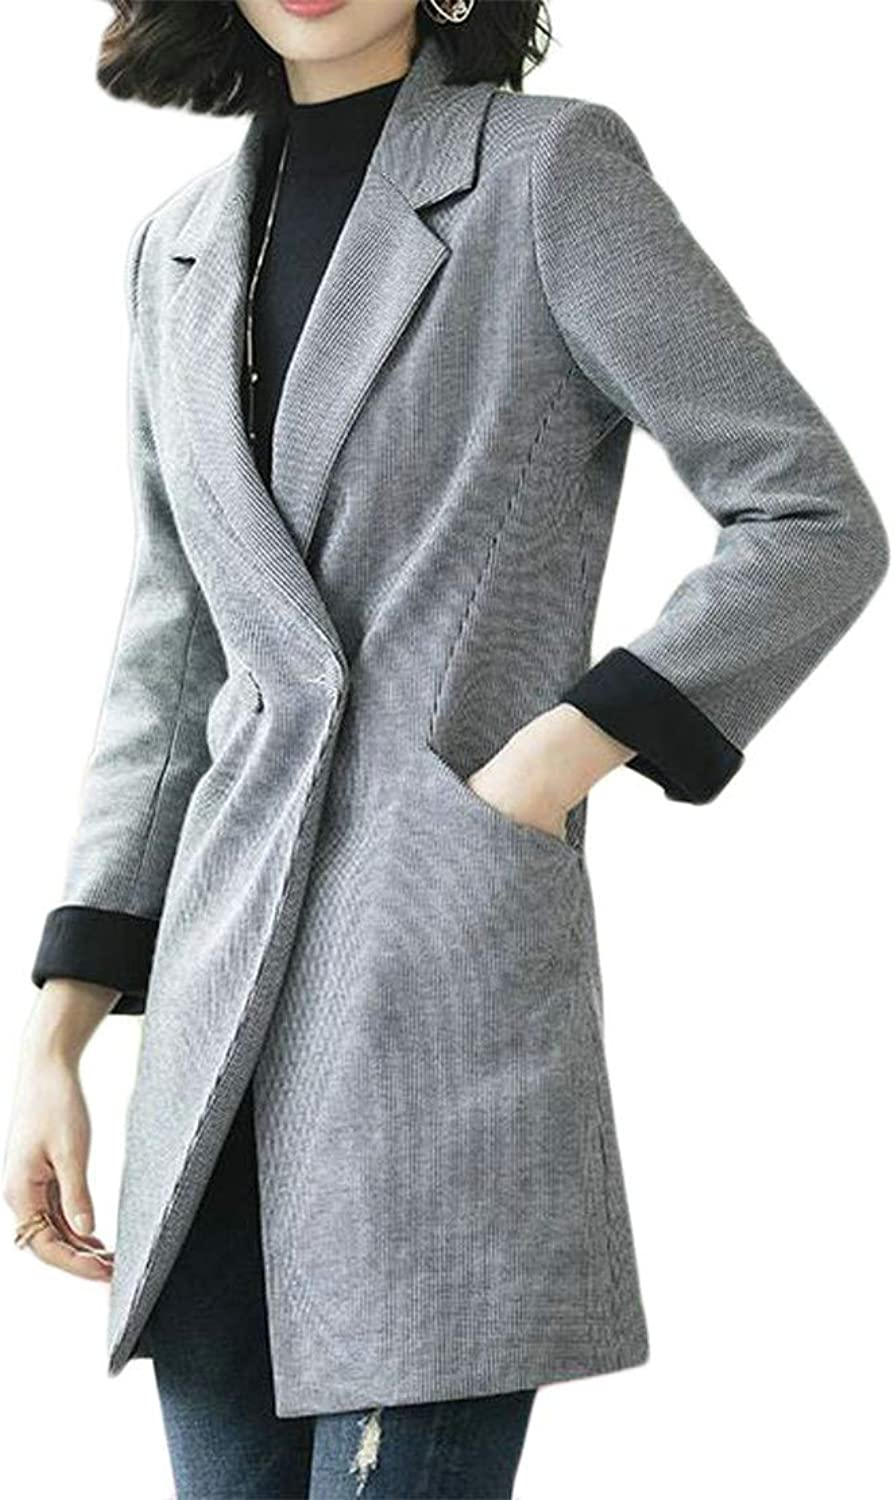 Blyent Women's Lapel Neck Classic Pocket One Button Wool Blend Coat Jacket